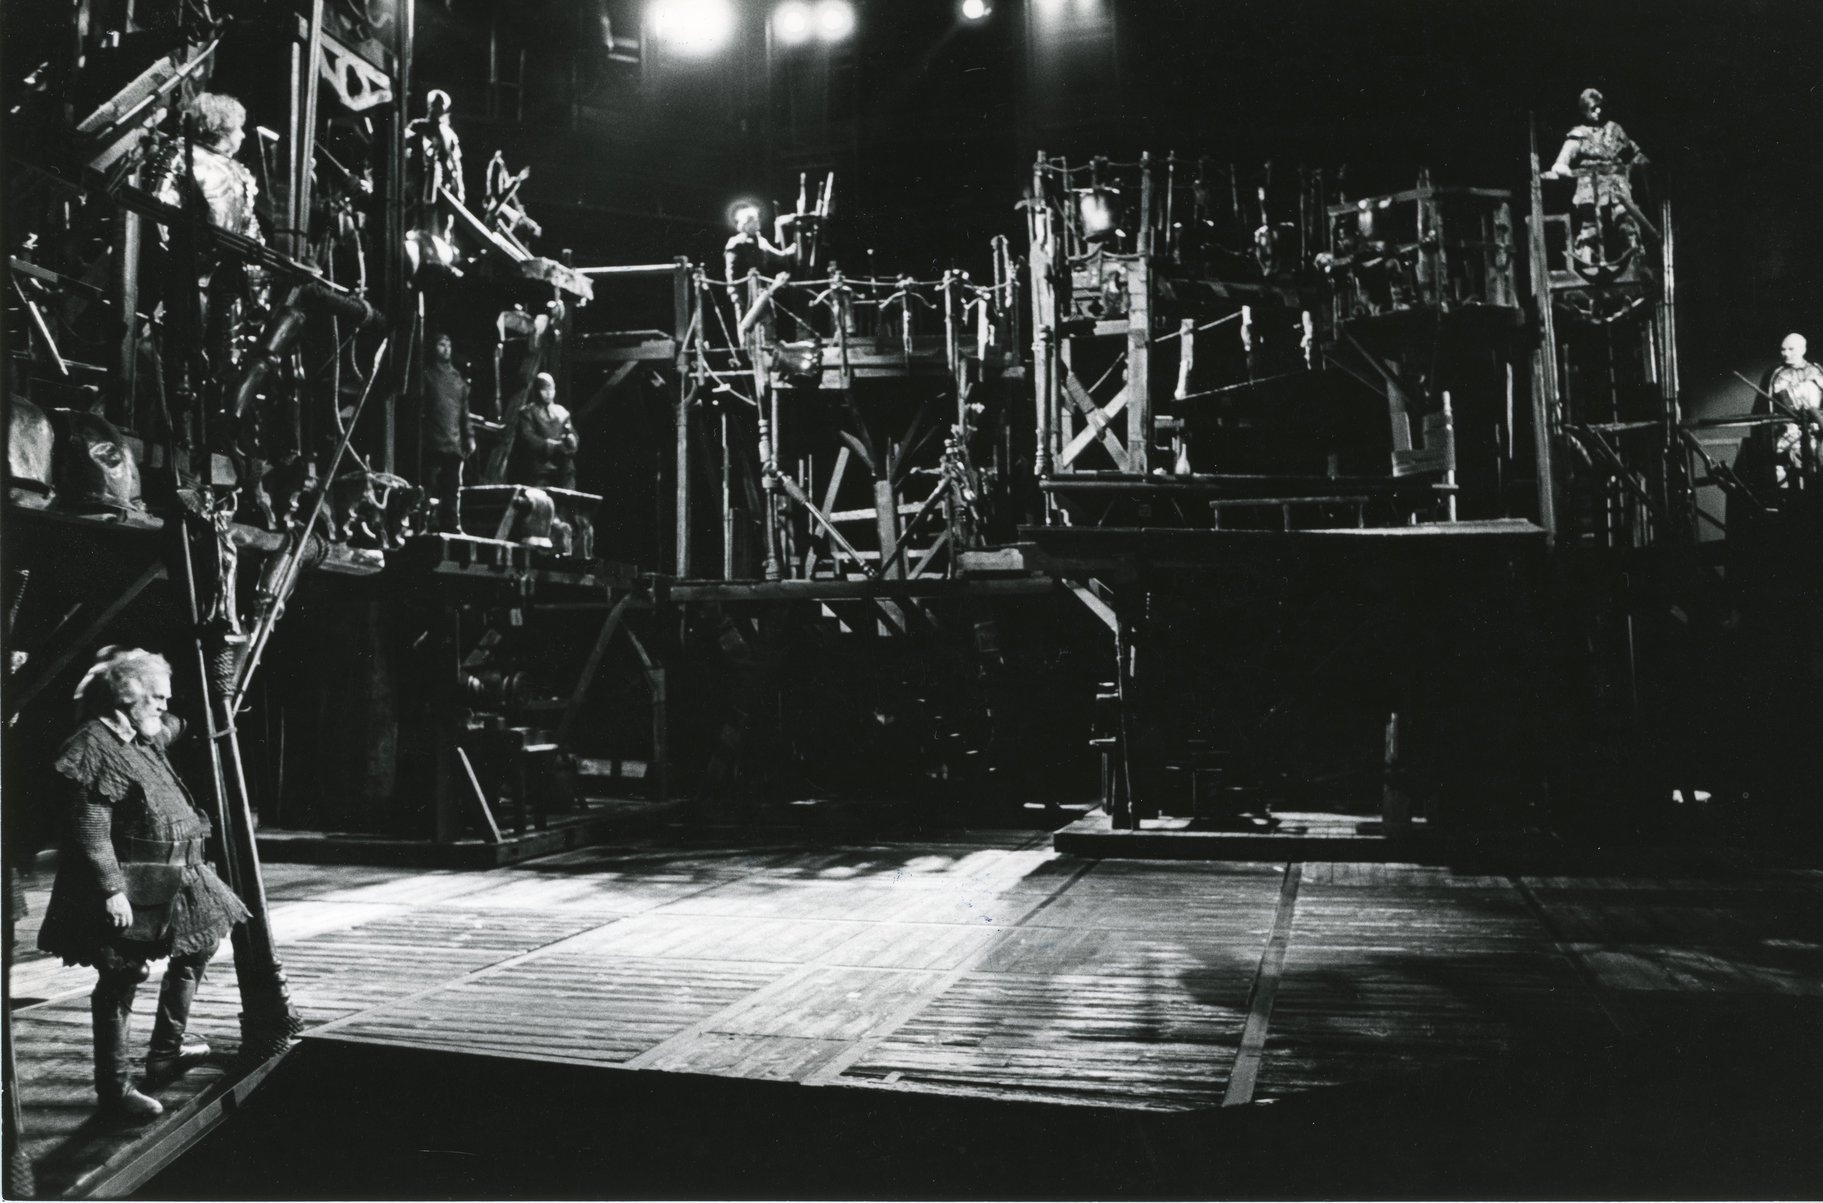 'Les Misérables' al Barbican, l'any 1985.